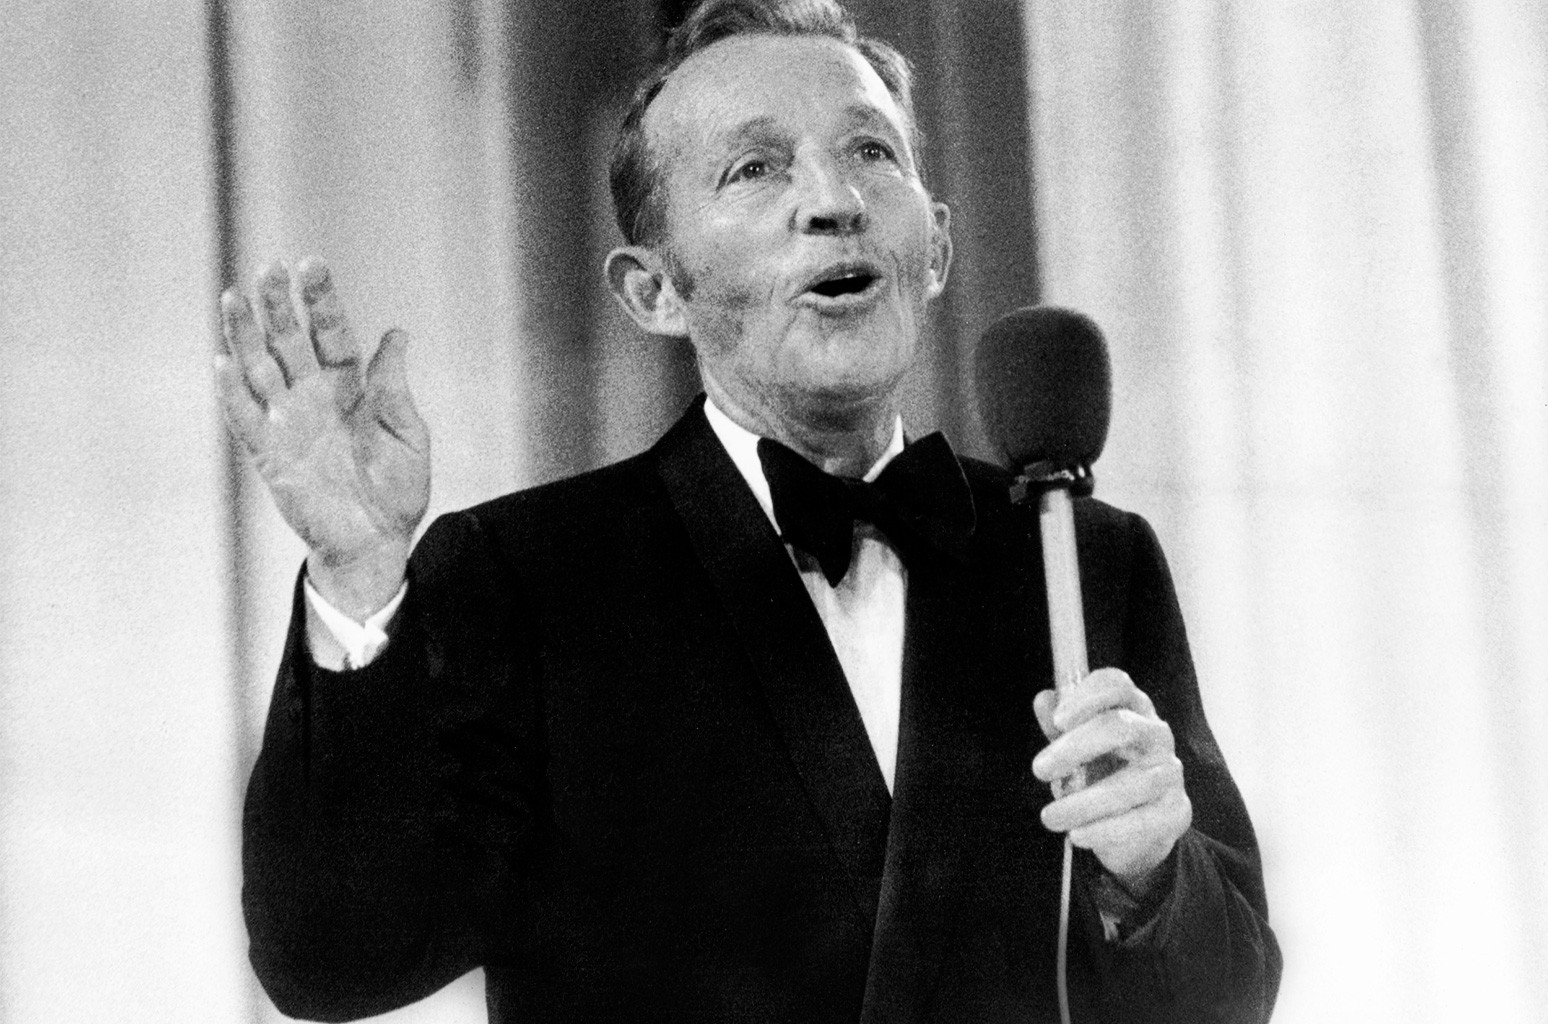 Bing Crosby performs at the Momarkedet opening show with his orchestra in Oslo on Aug. 30, 1977.